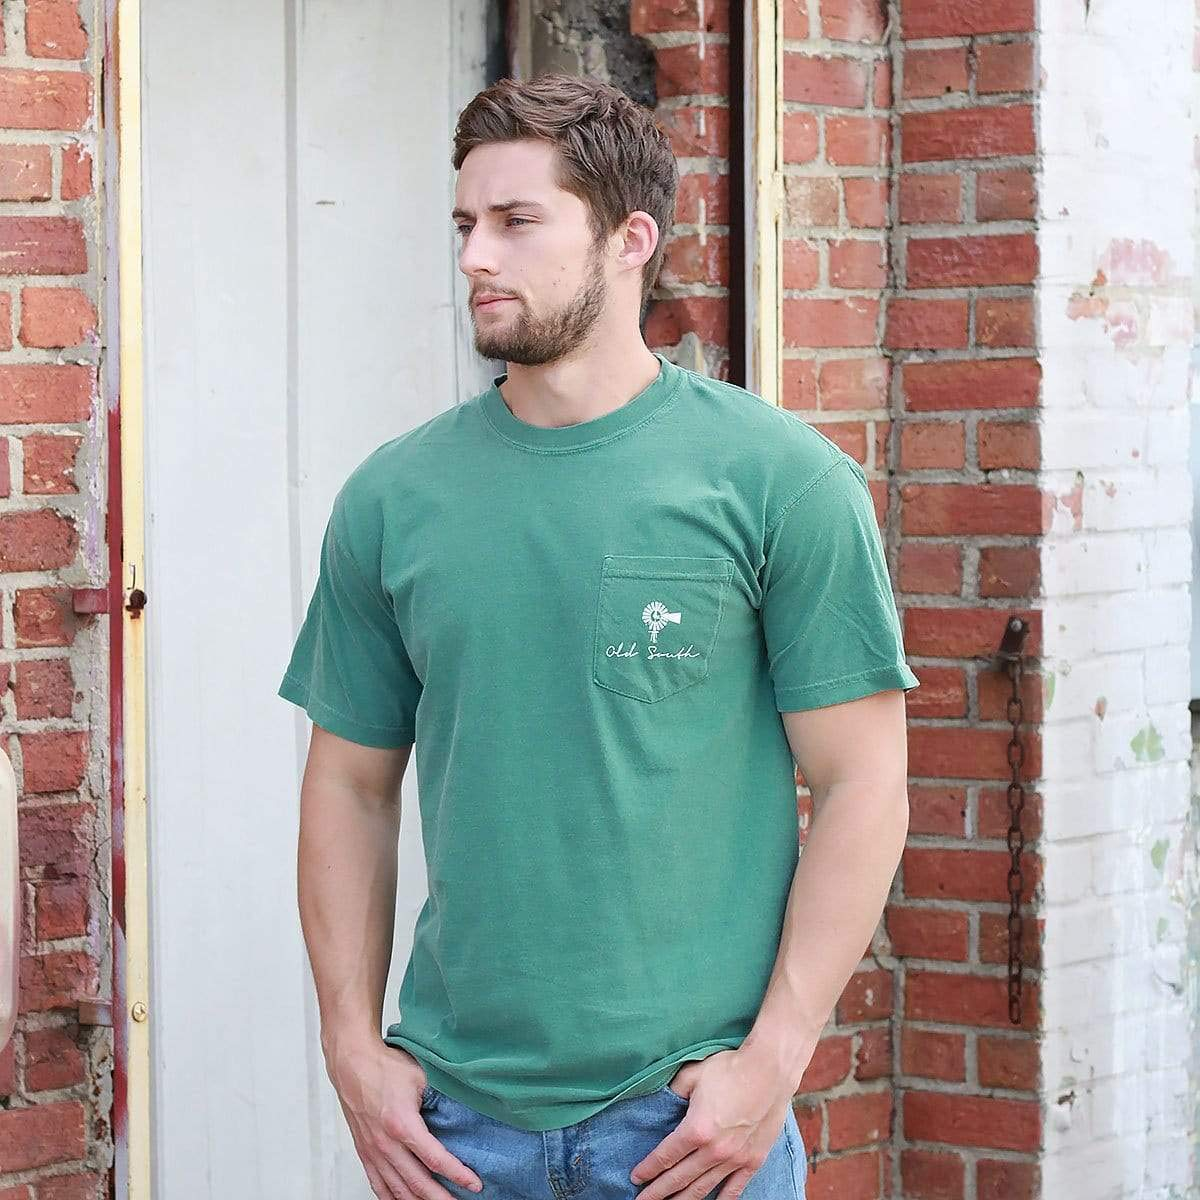 Short Sleeve Old South Apparel 3 Labs